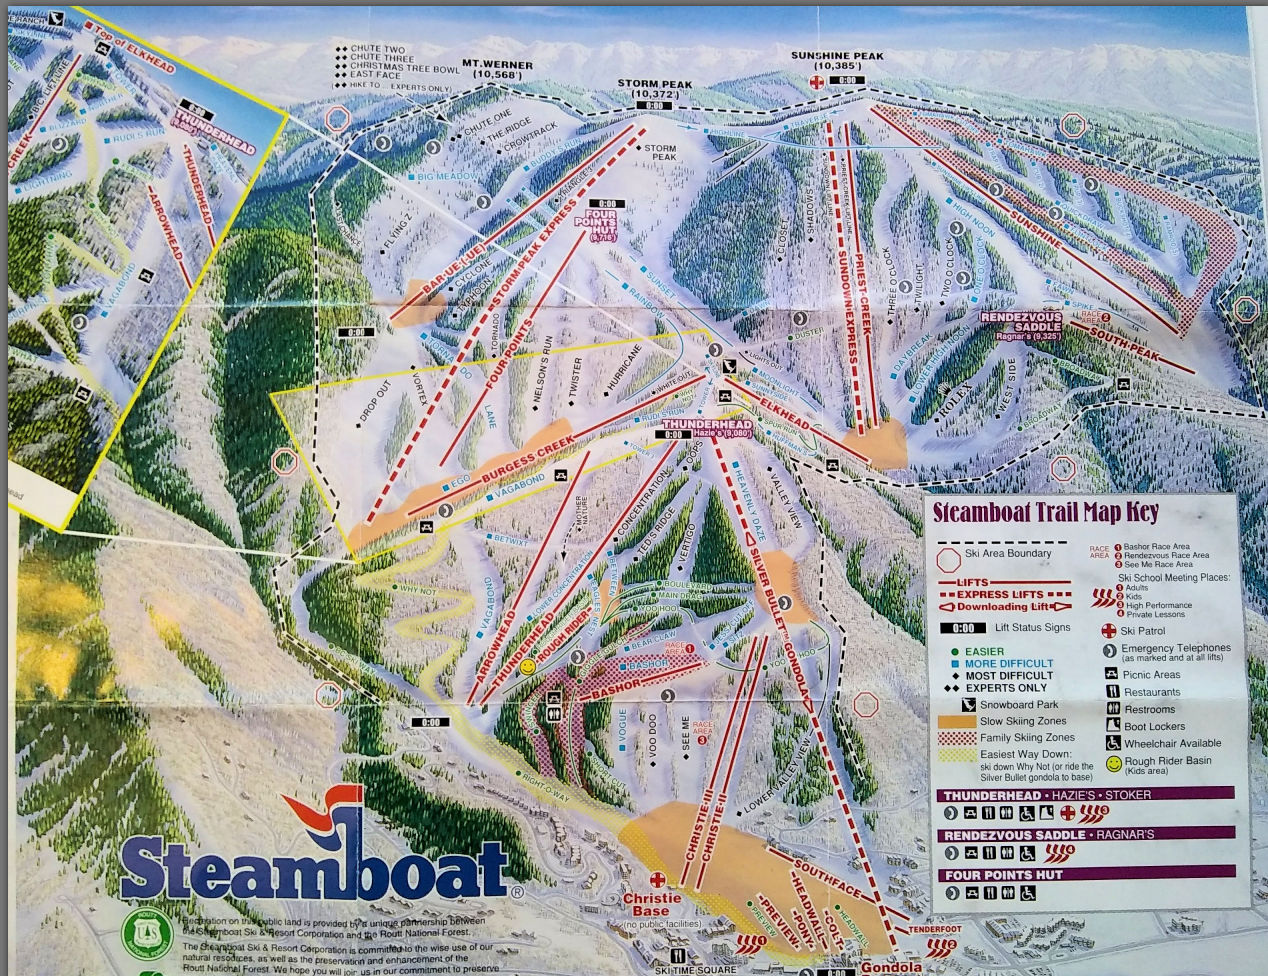 Steamboat1995 map